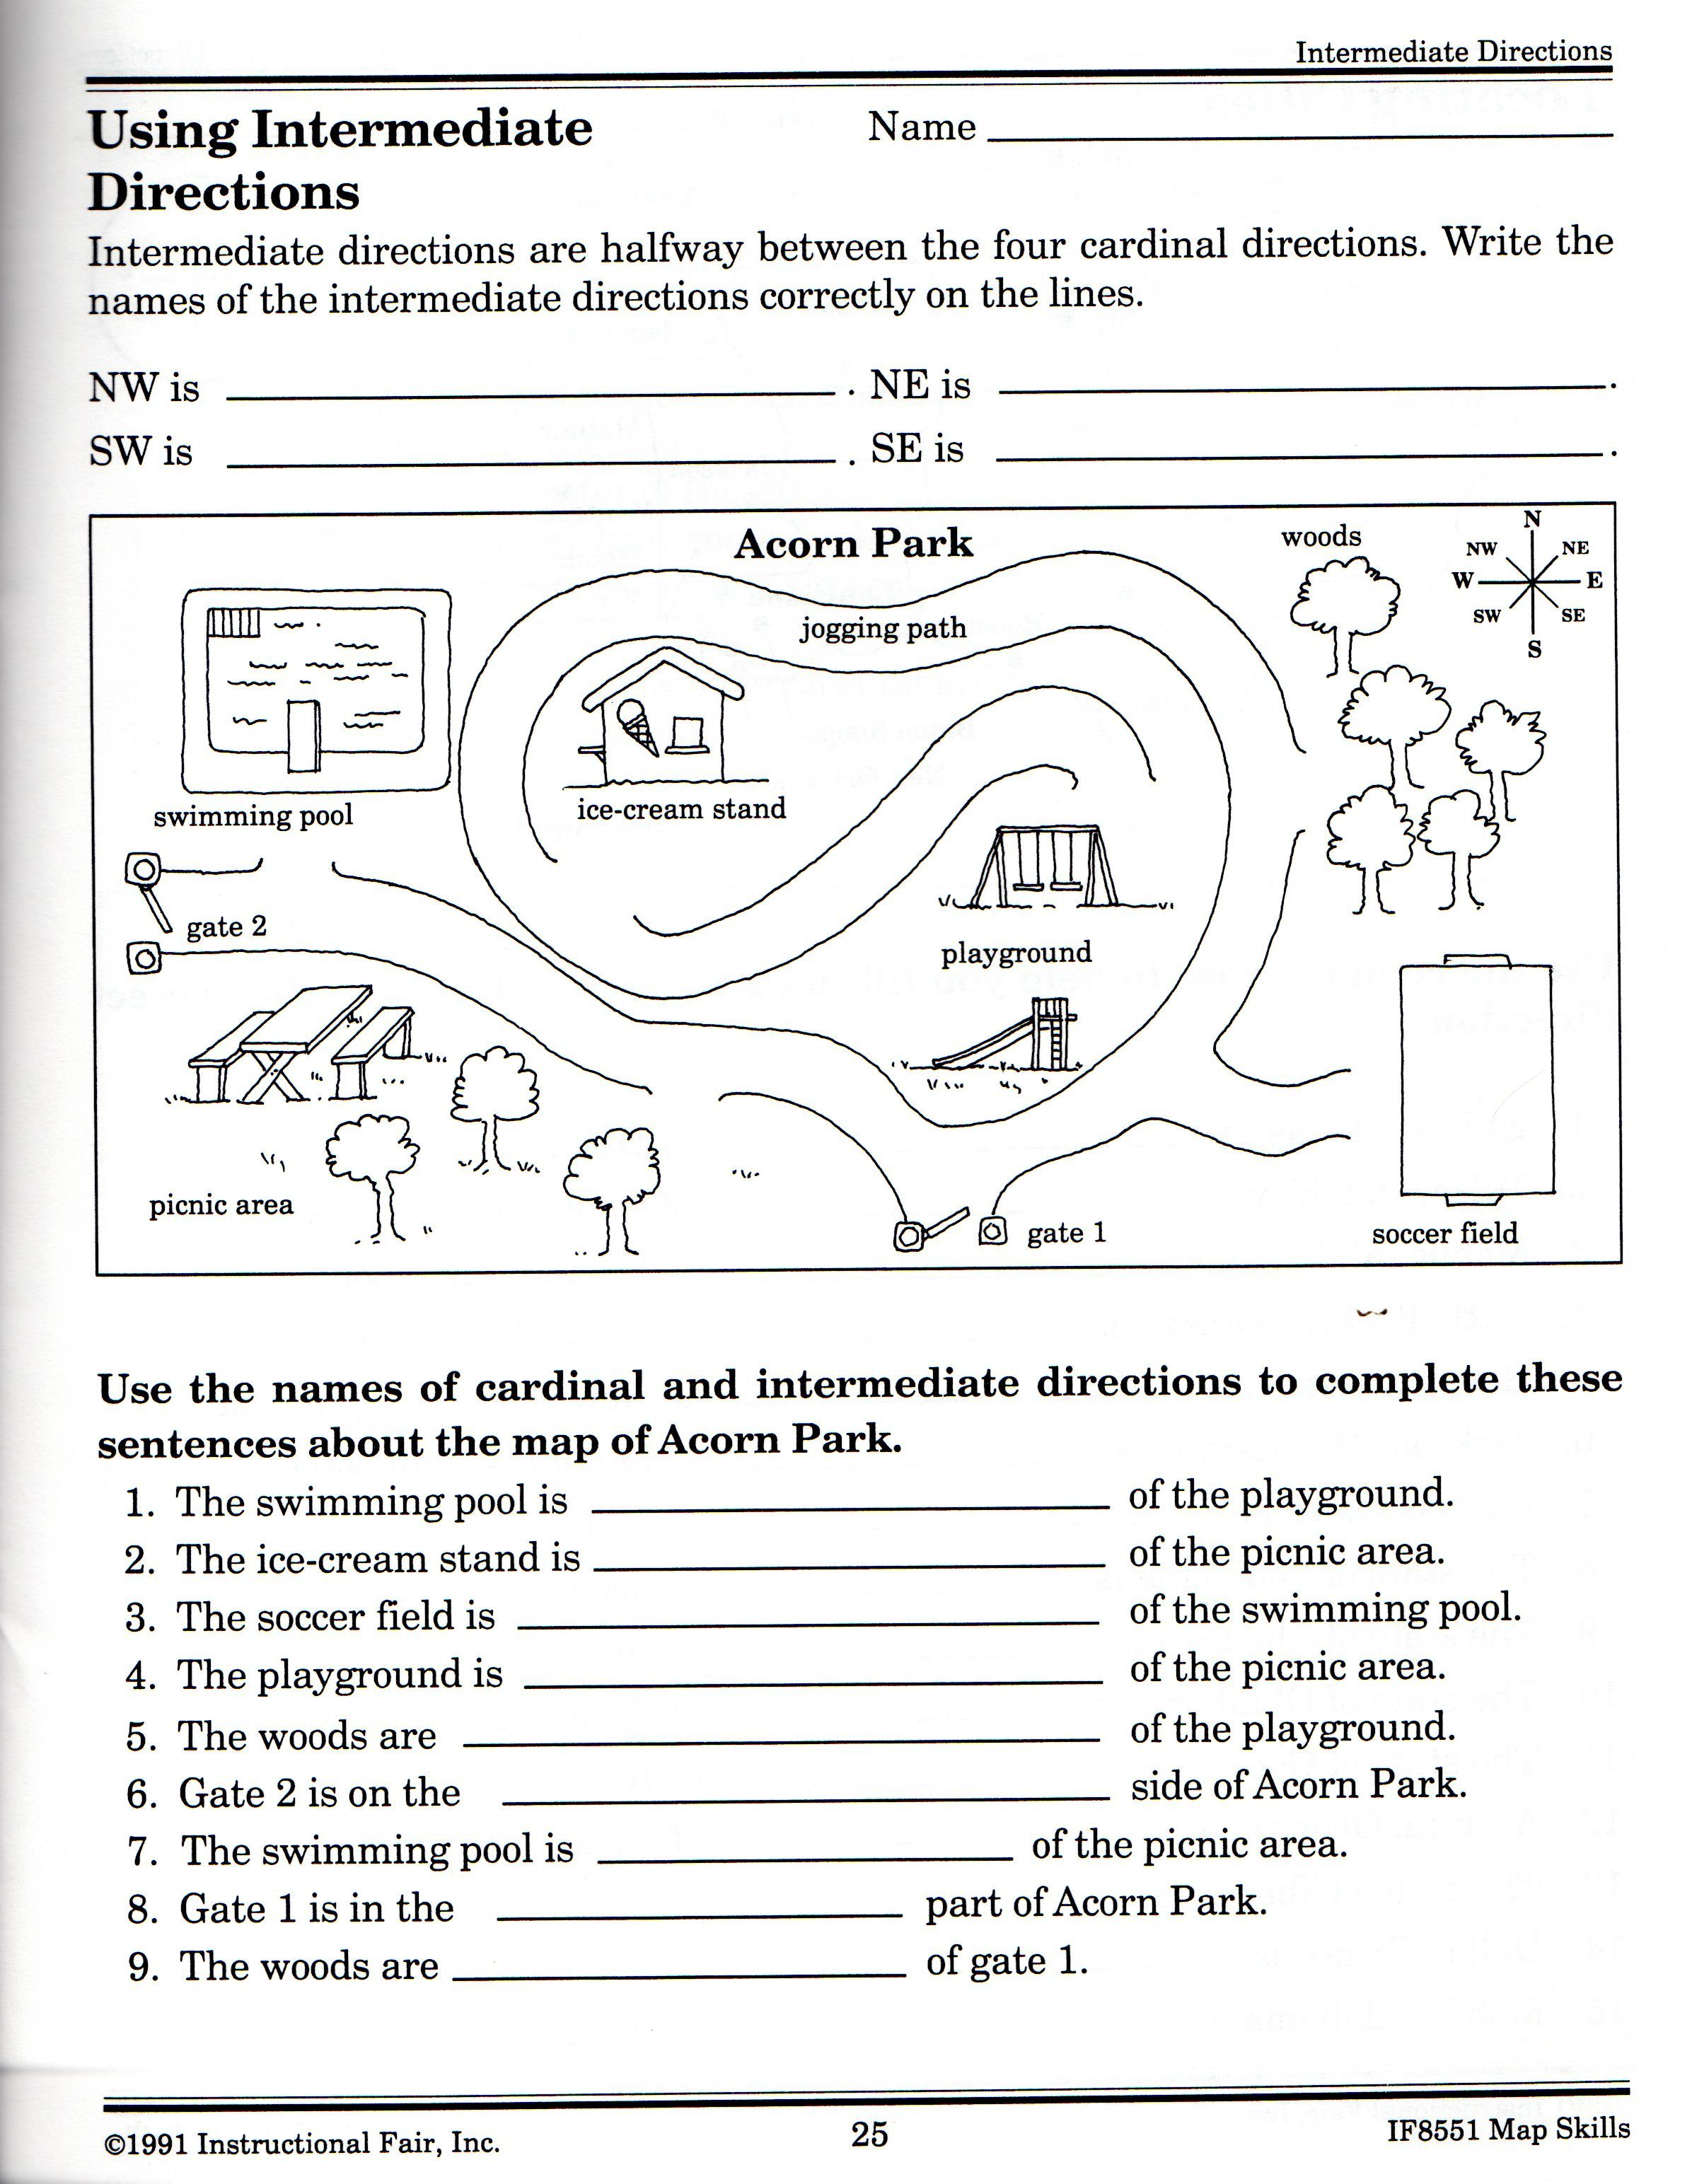 21 Awesome Following Directions Worksheet For You